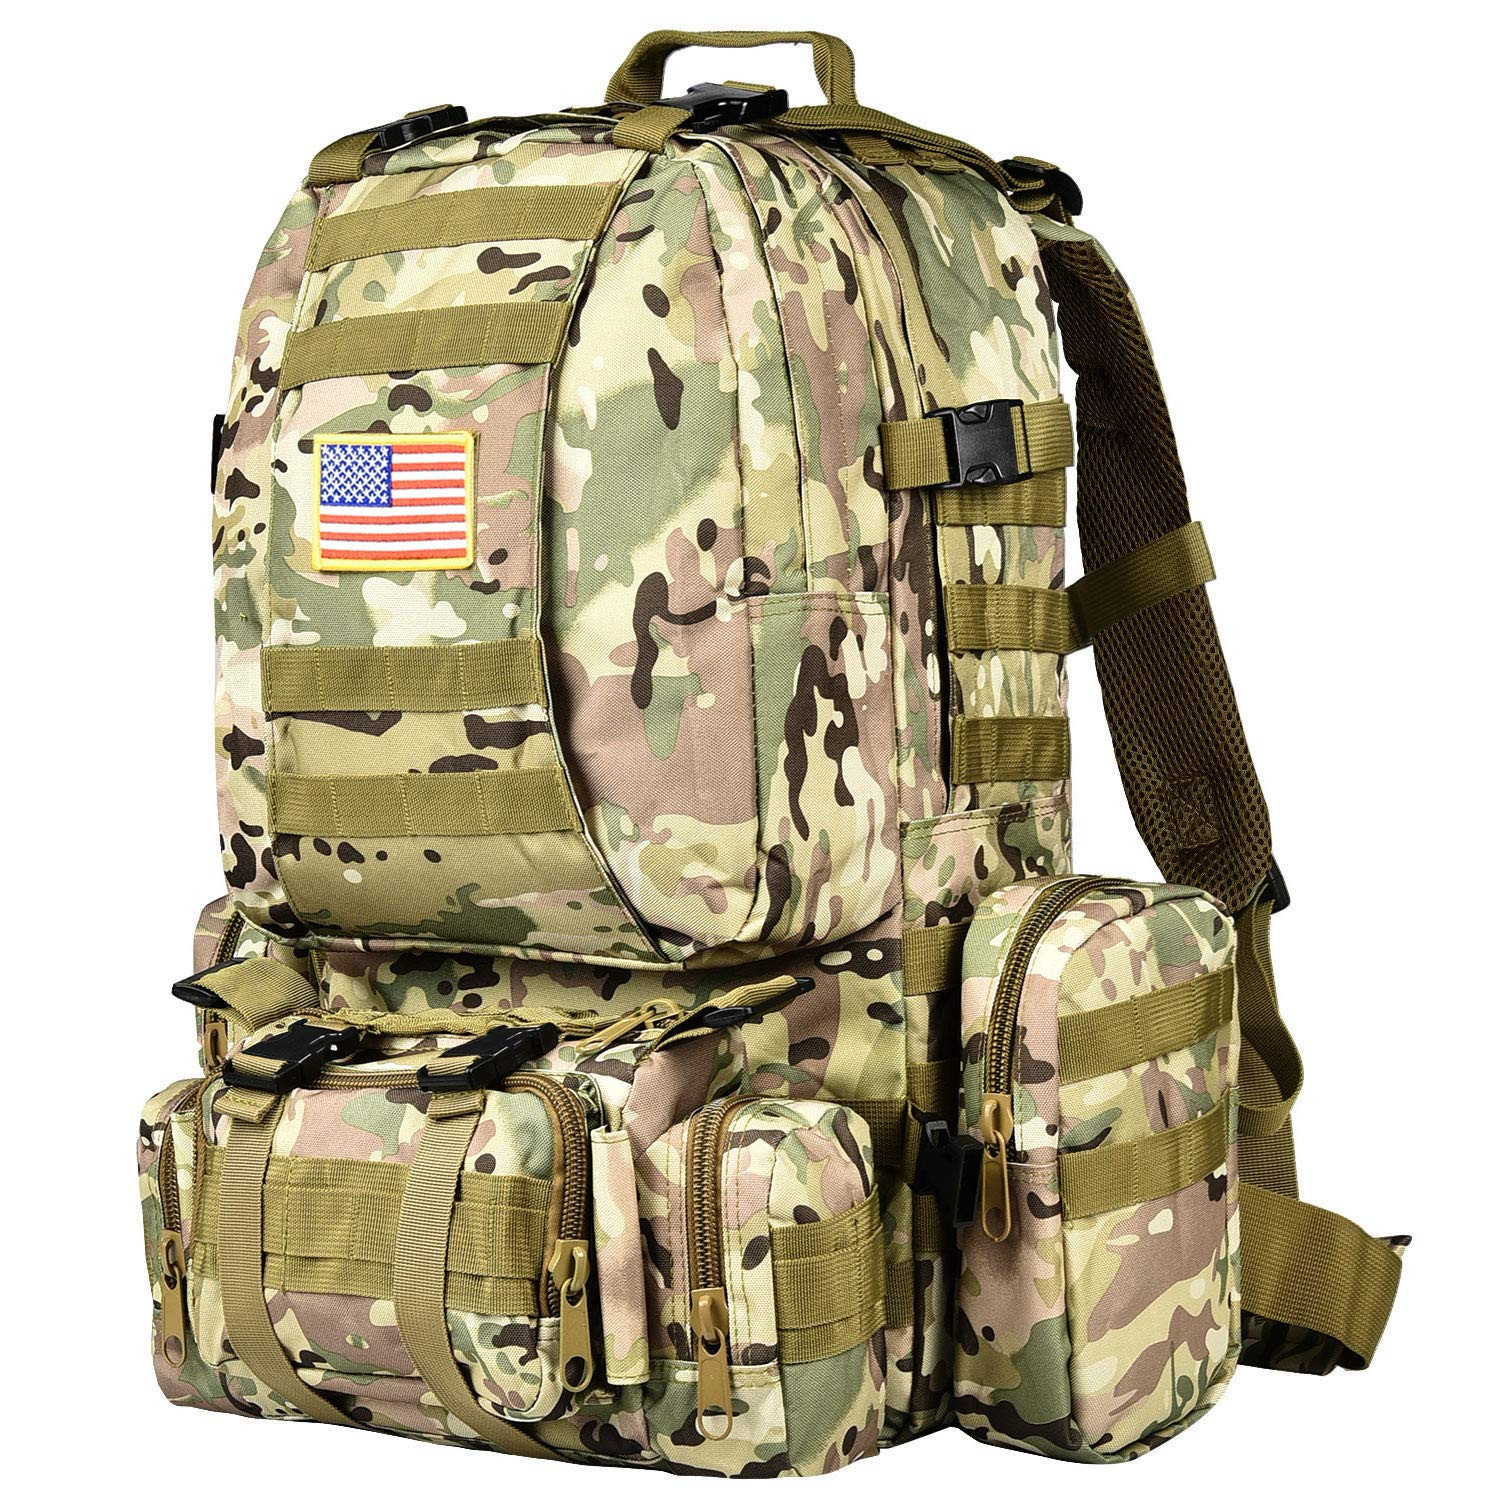 NOOLA Tactical Military Backpack Survival Army Rucksack Assault